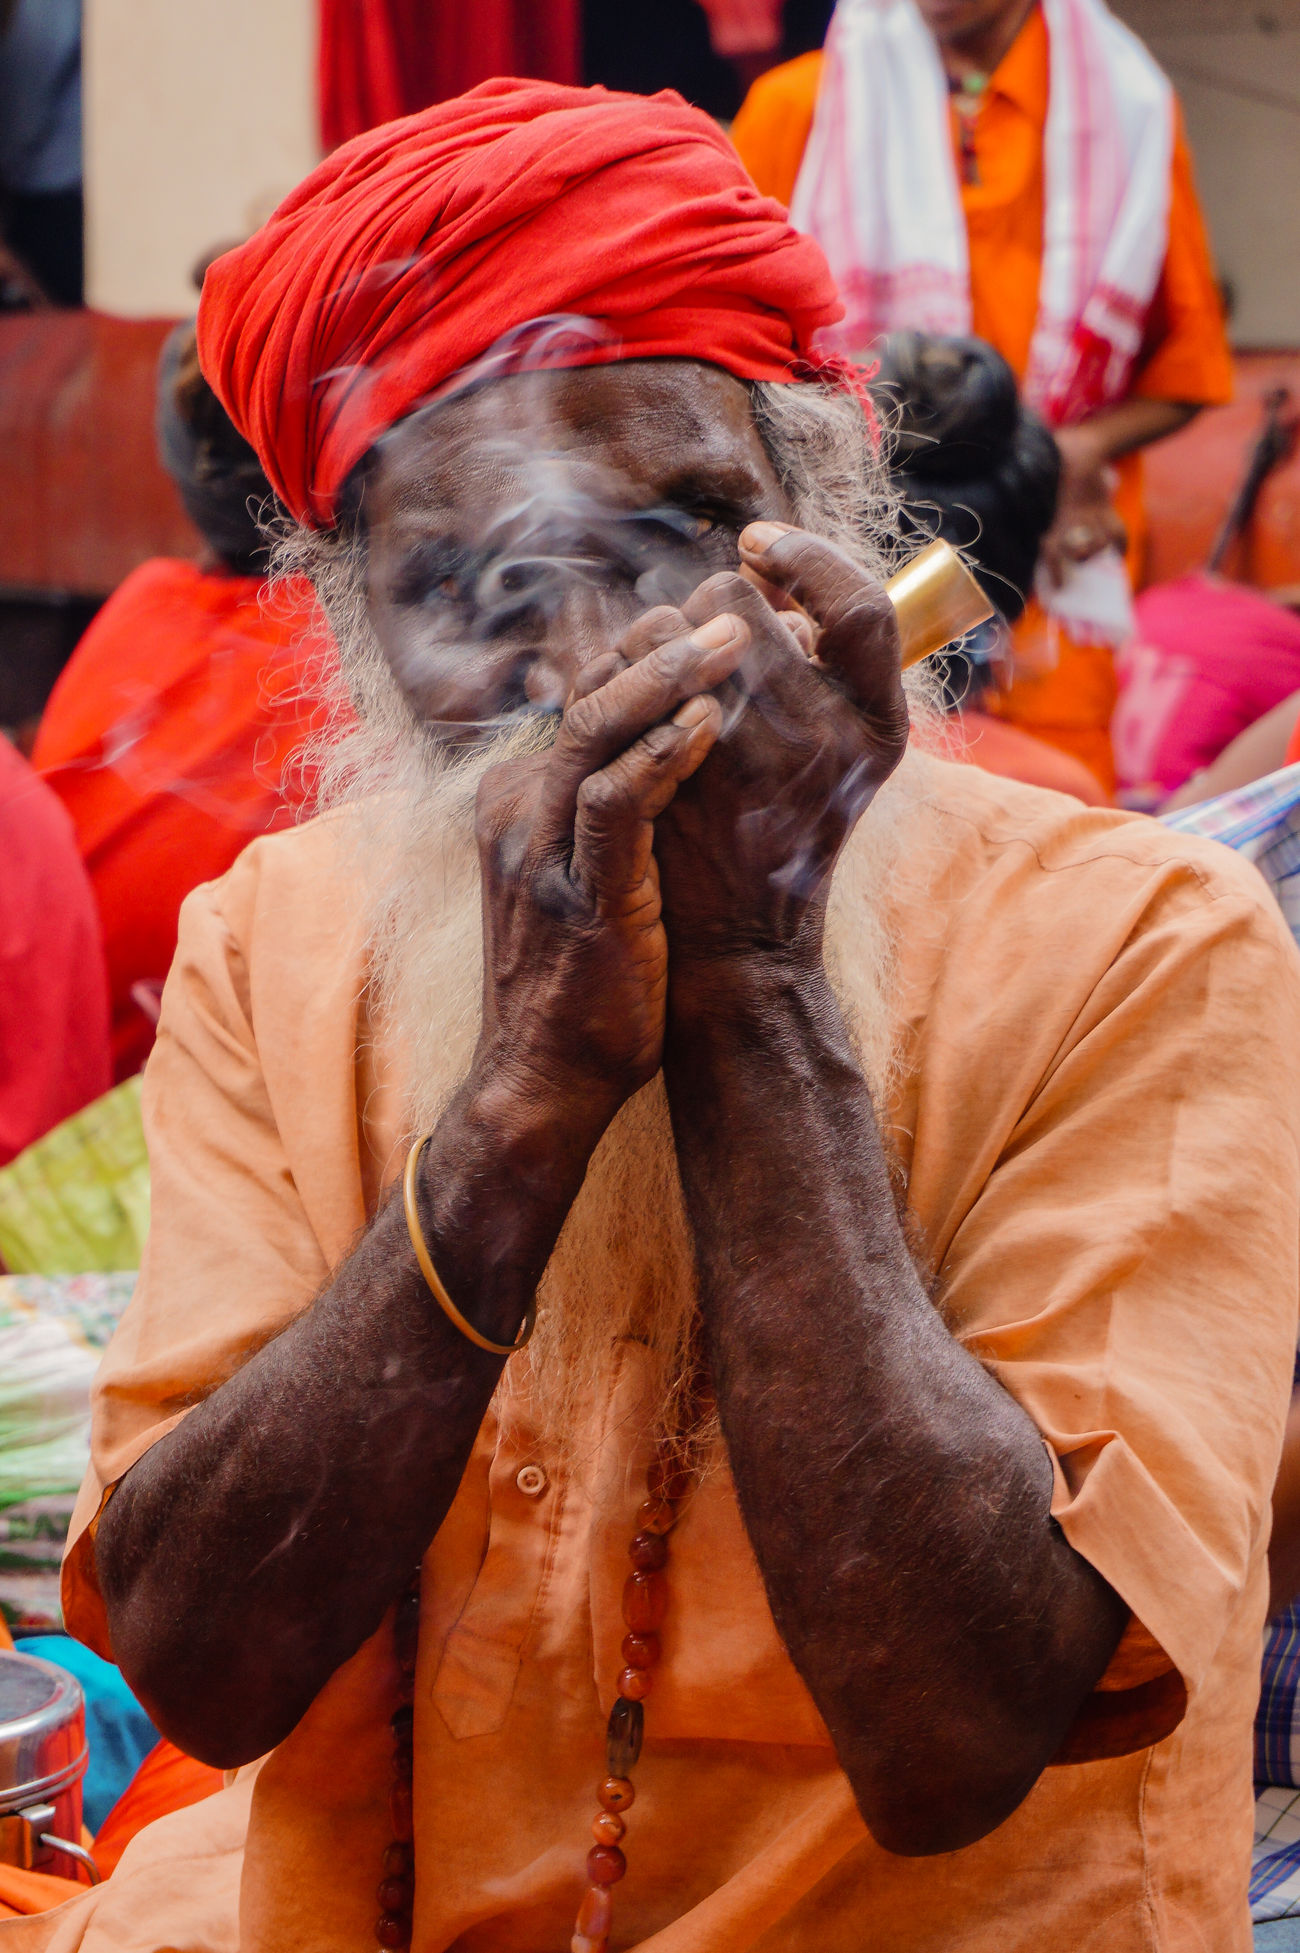 Adult Adults Only Assignments Bright Colours Close-up Cultures Day Devotion Elephant Emotions Captured Exploring Style Guwahati India Kamakhya Temple Mammal Men One Animal One Person Outdoors People Real People Religion Traditional Clothing Women